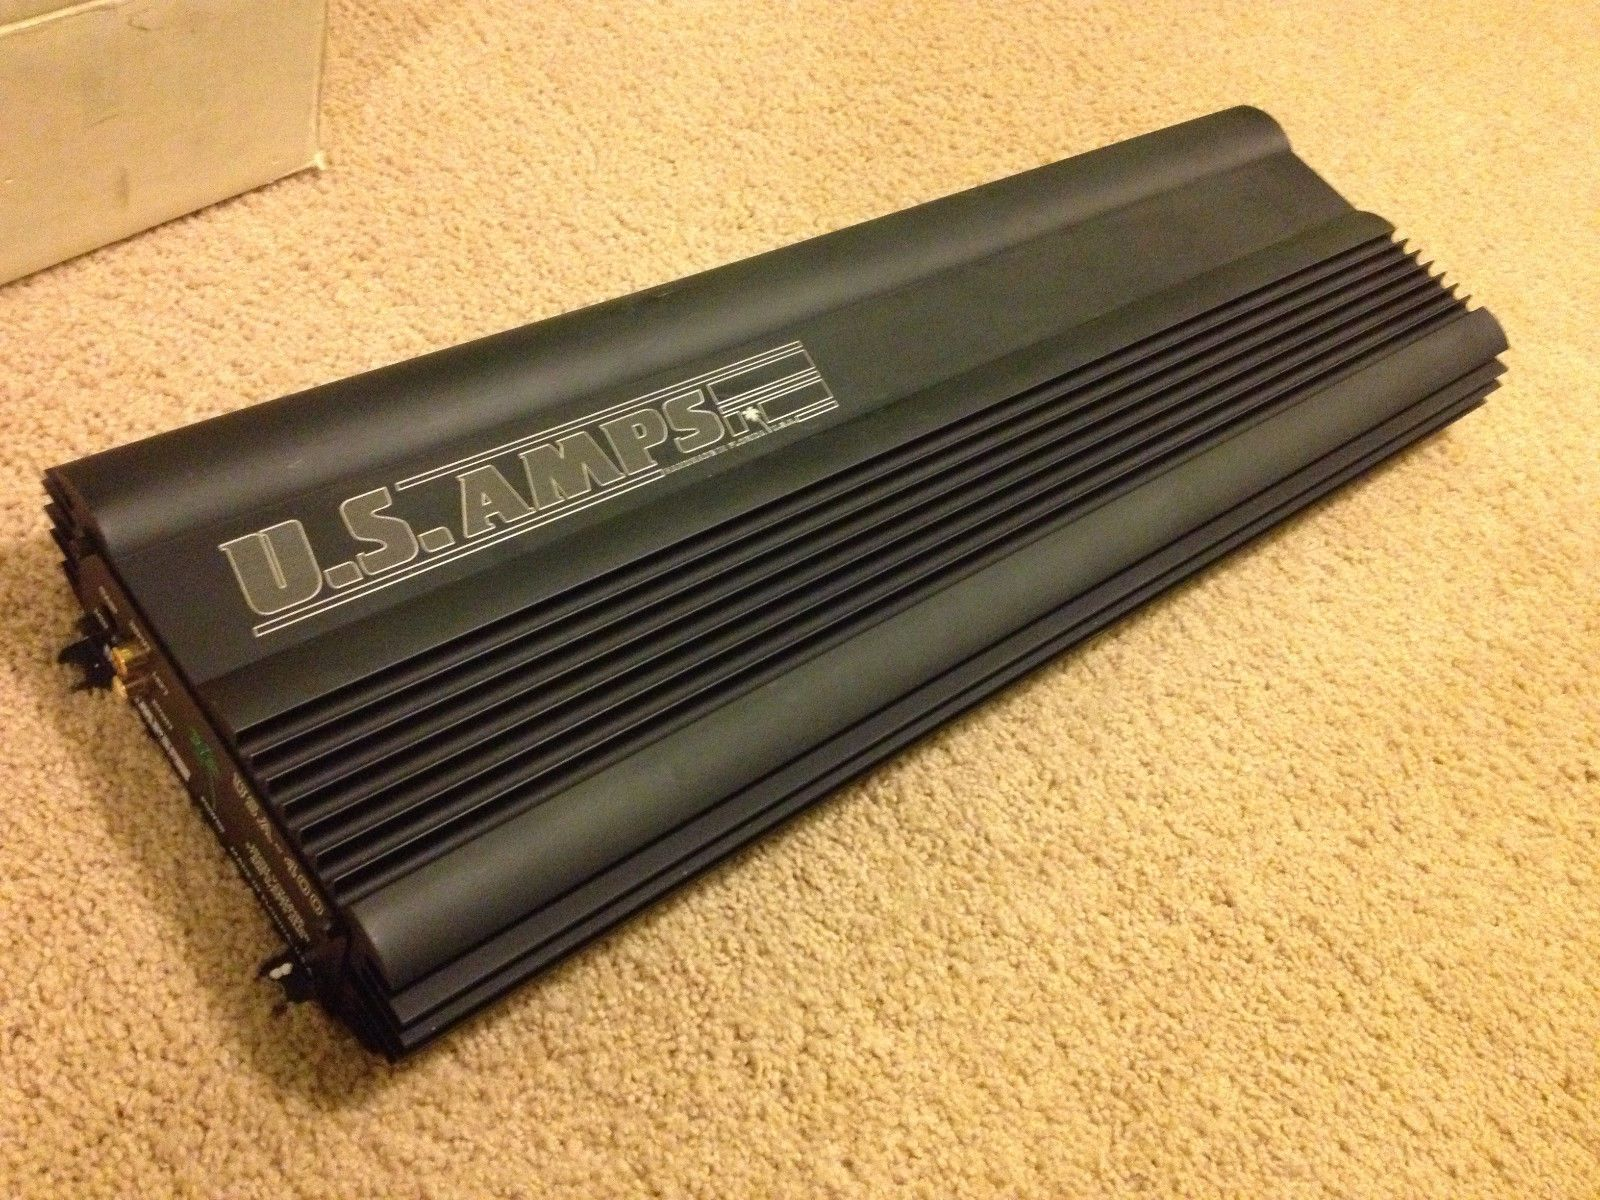 Us Amps Usa 400 2 Channel Amplifier Handmade In Florida Usa Car Audio Subwoofers Car Audio Amplifier Car Audio